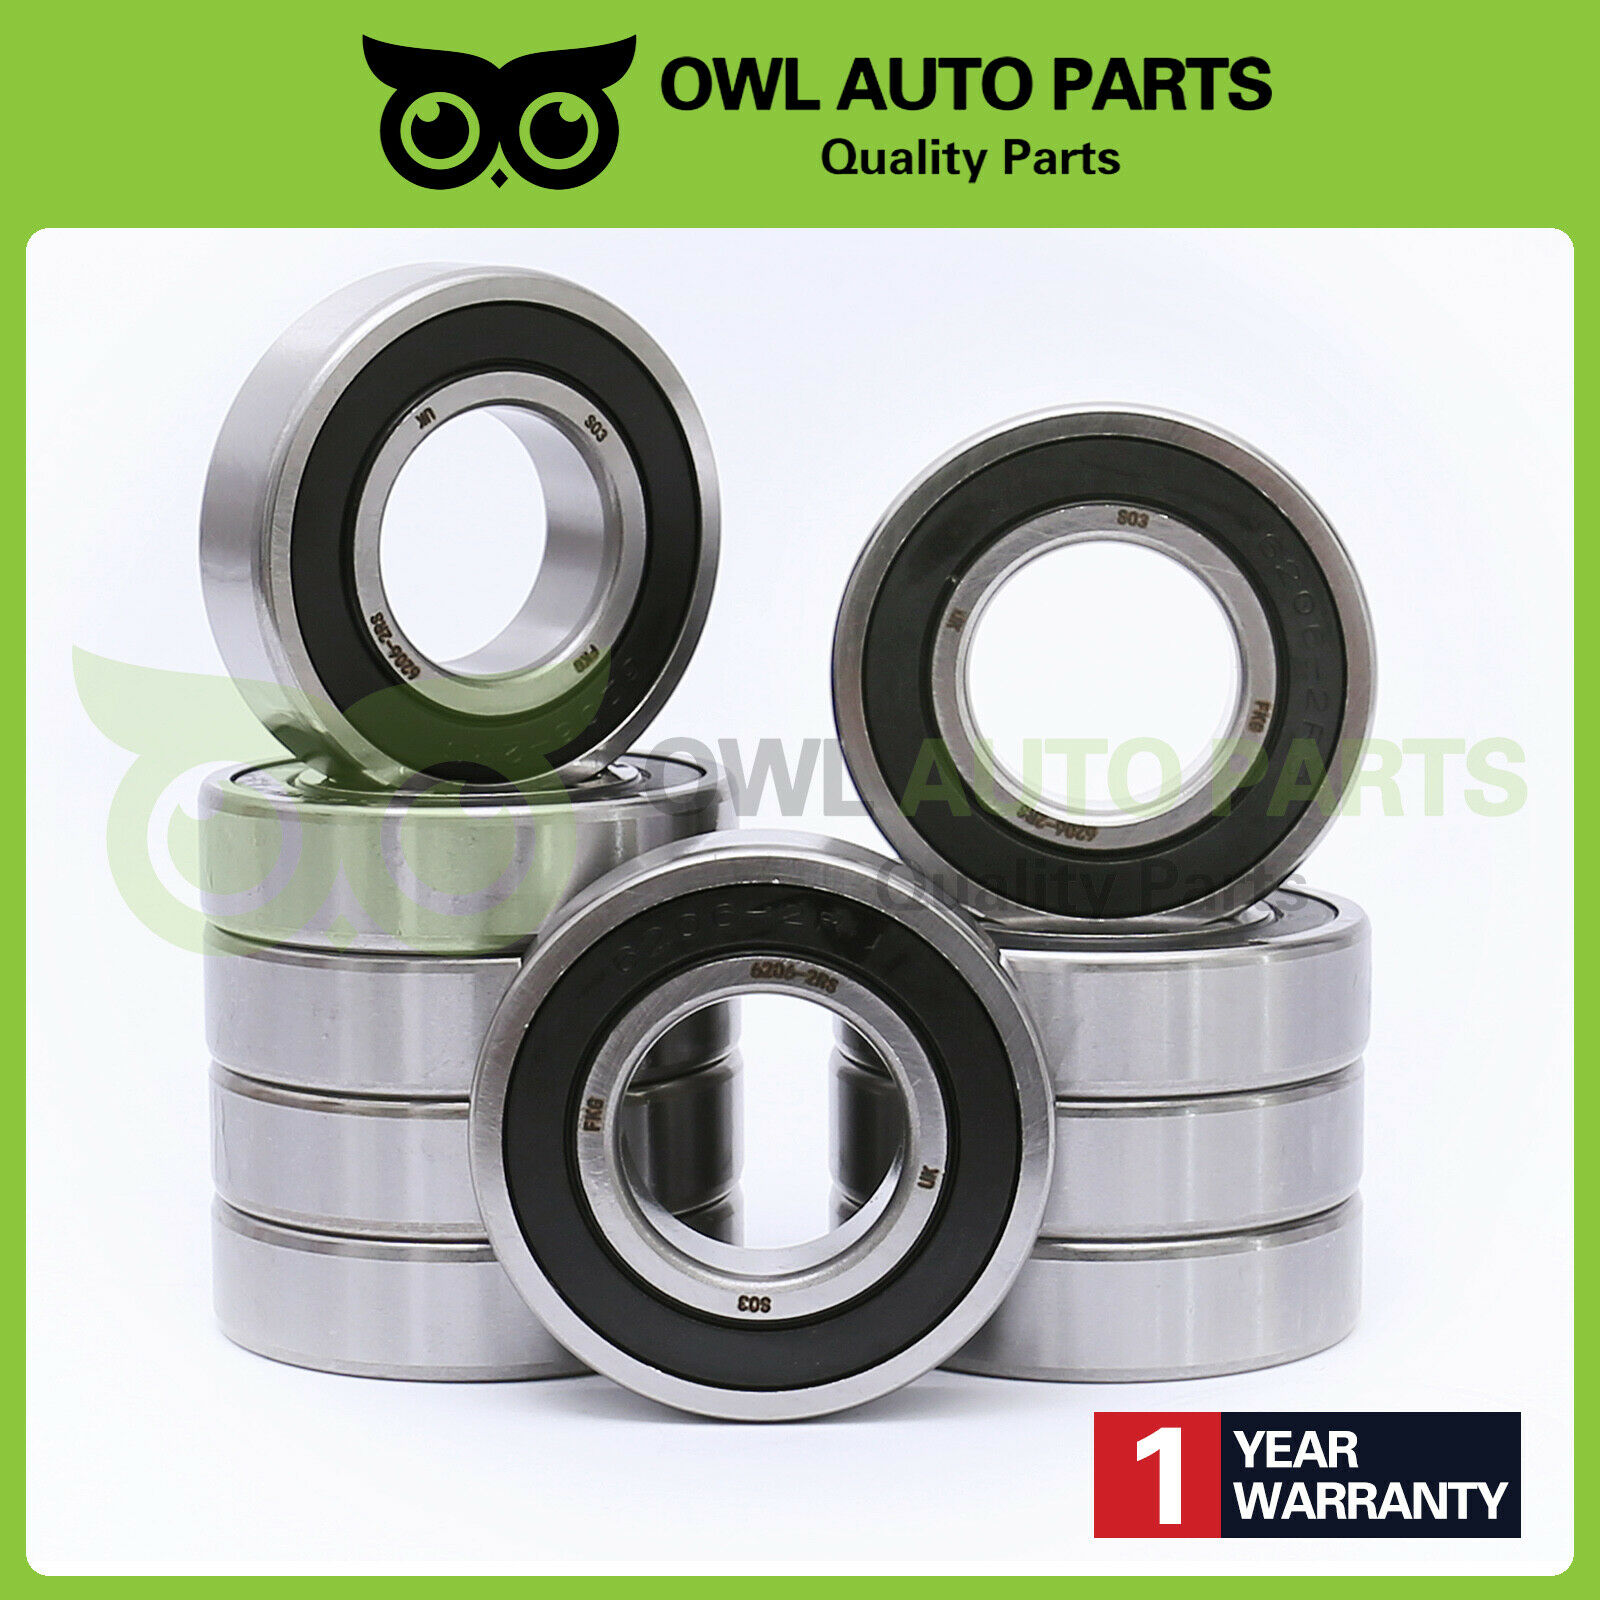 6206-2RS C3 SKF Brand rubber seal bearing 6206-rs ball bearings 6206 rs Qty.10